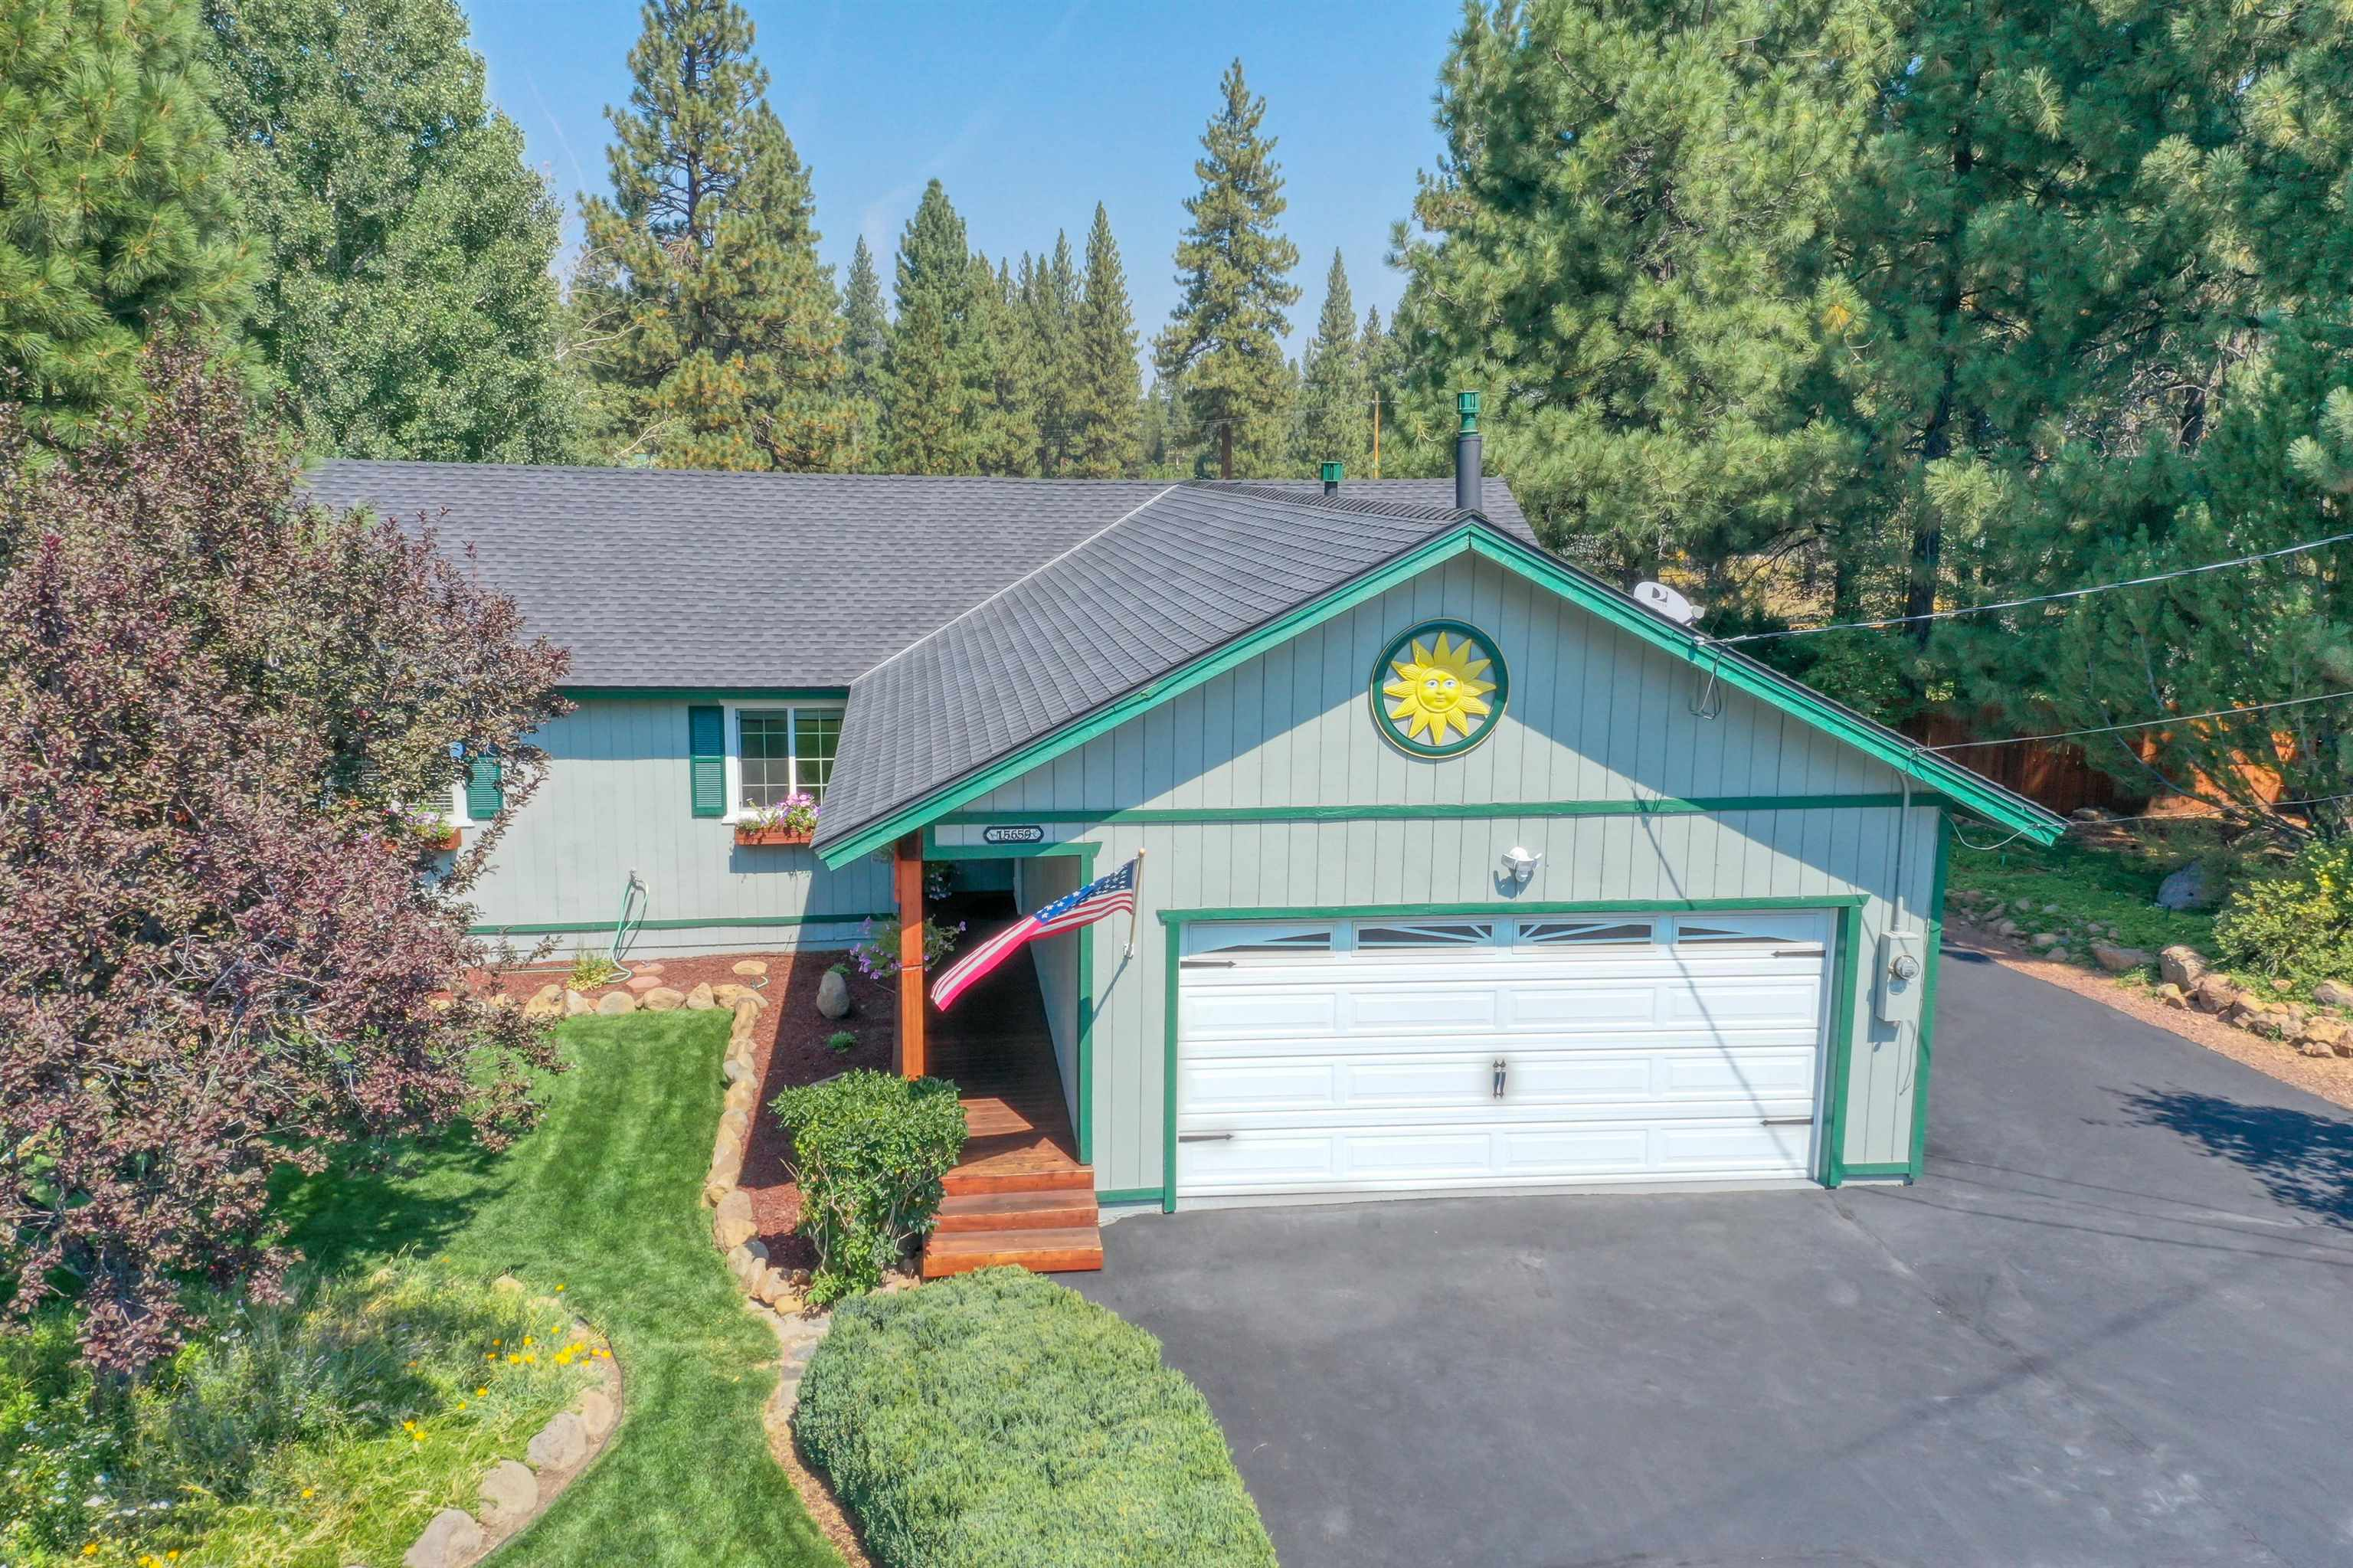 Image for 15659 Archery View, Truckee, CA 96161